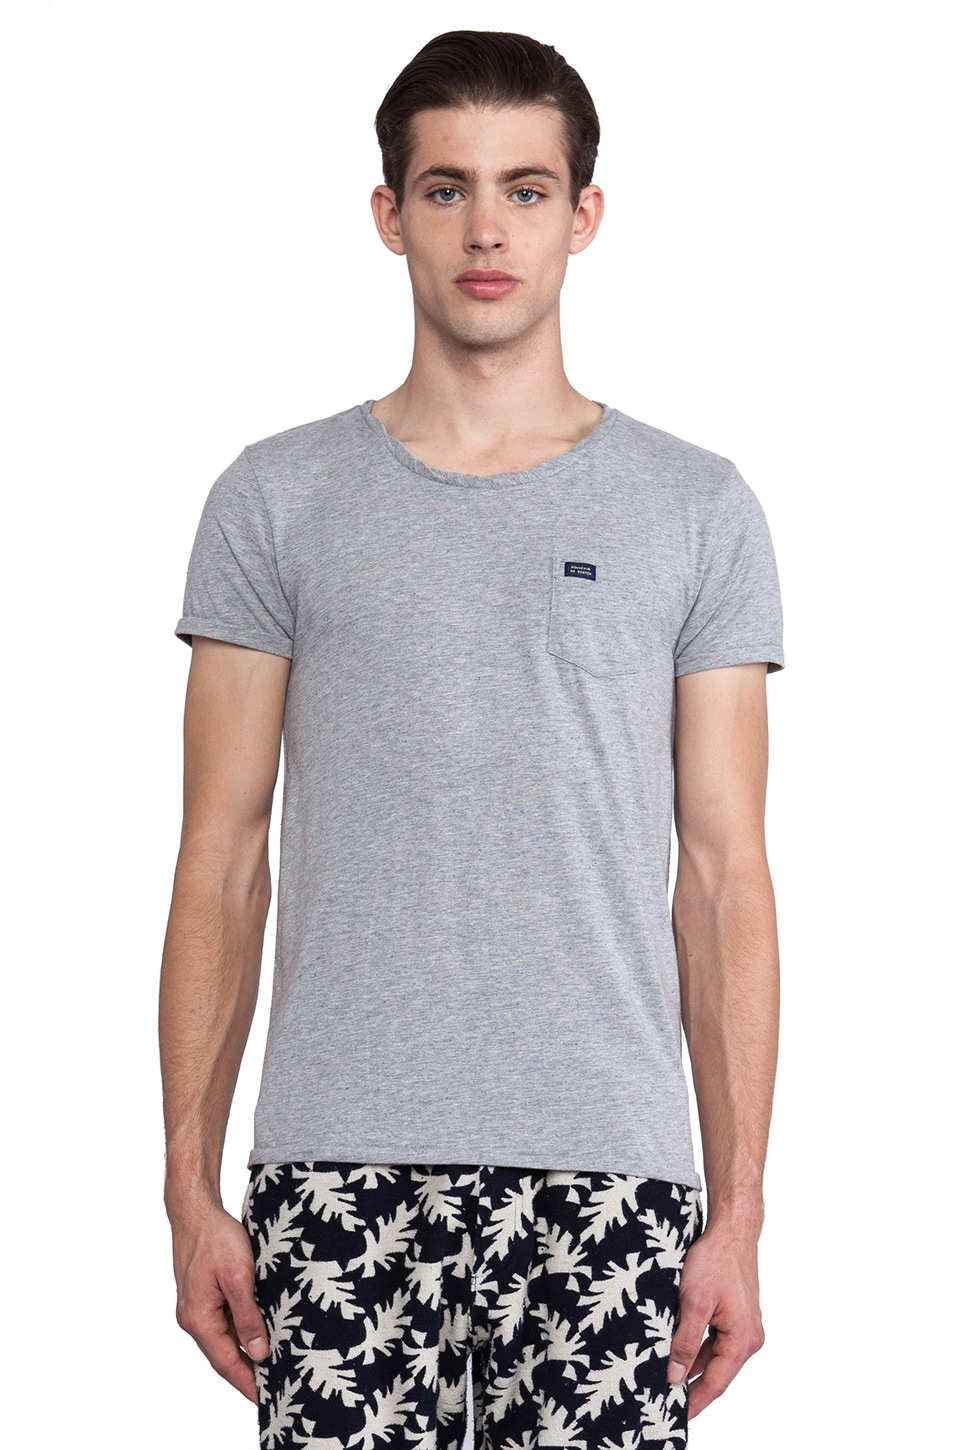 Scotch & Soda Classic Crewneck Tee w/ Chest Pocket in Grey